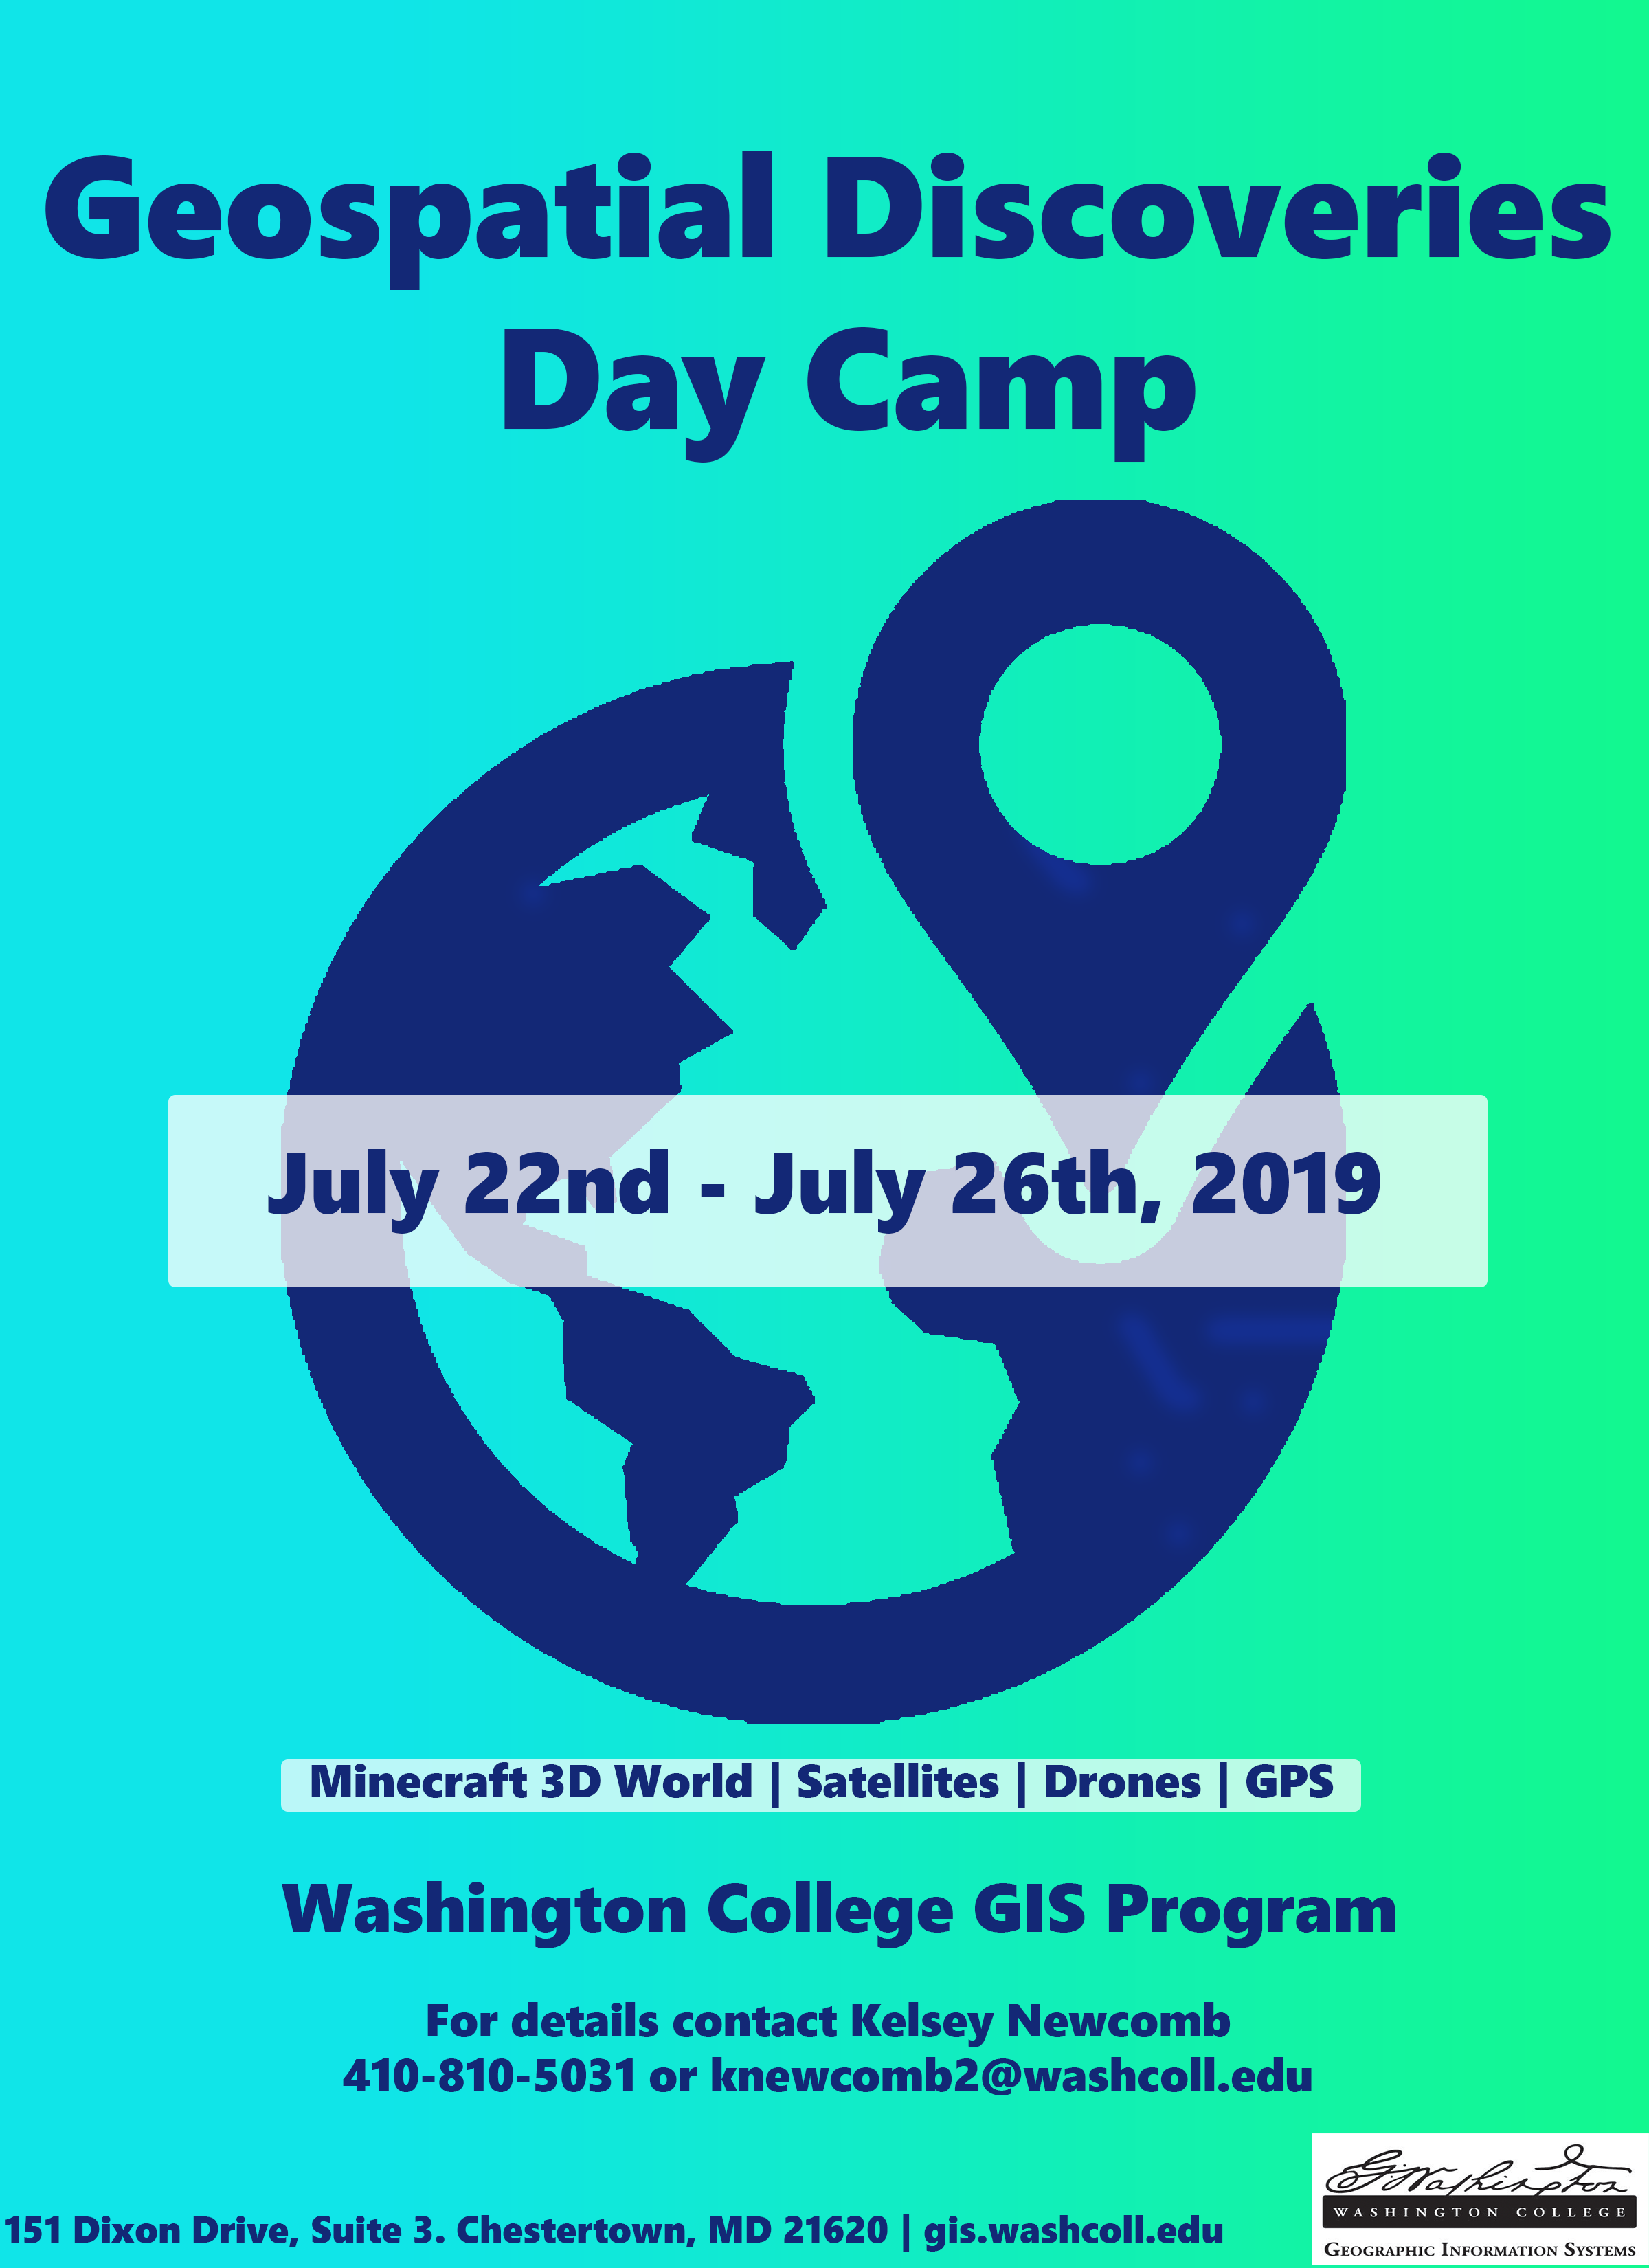 Geospatial Discoveries Day Camp